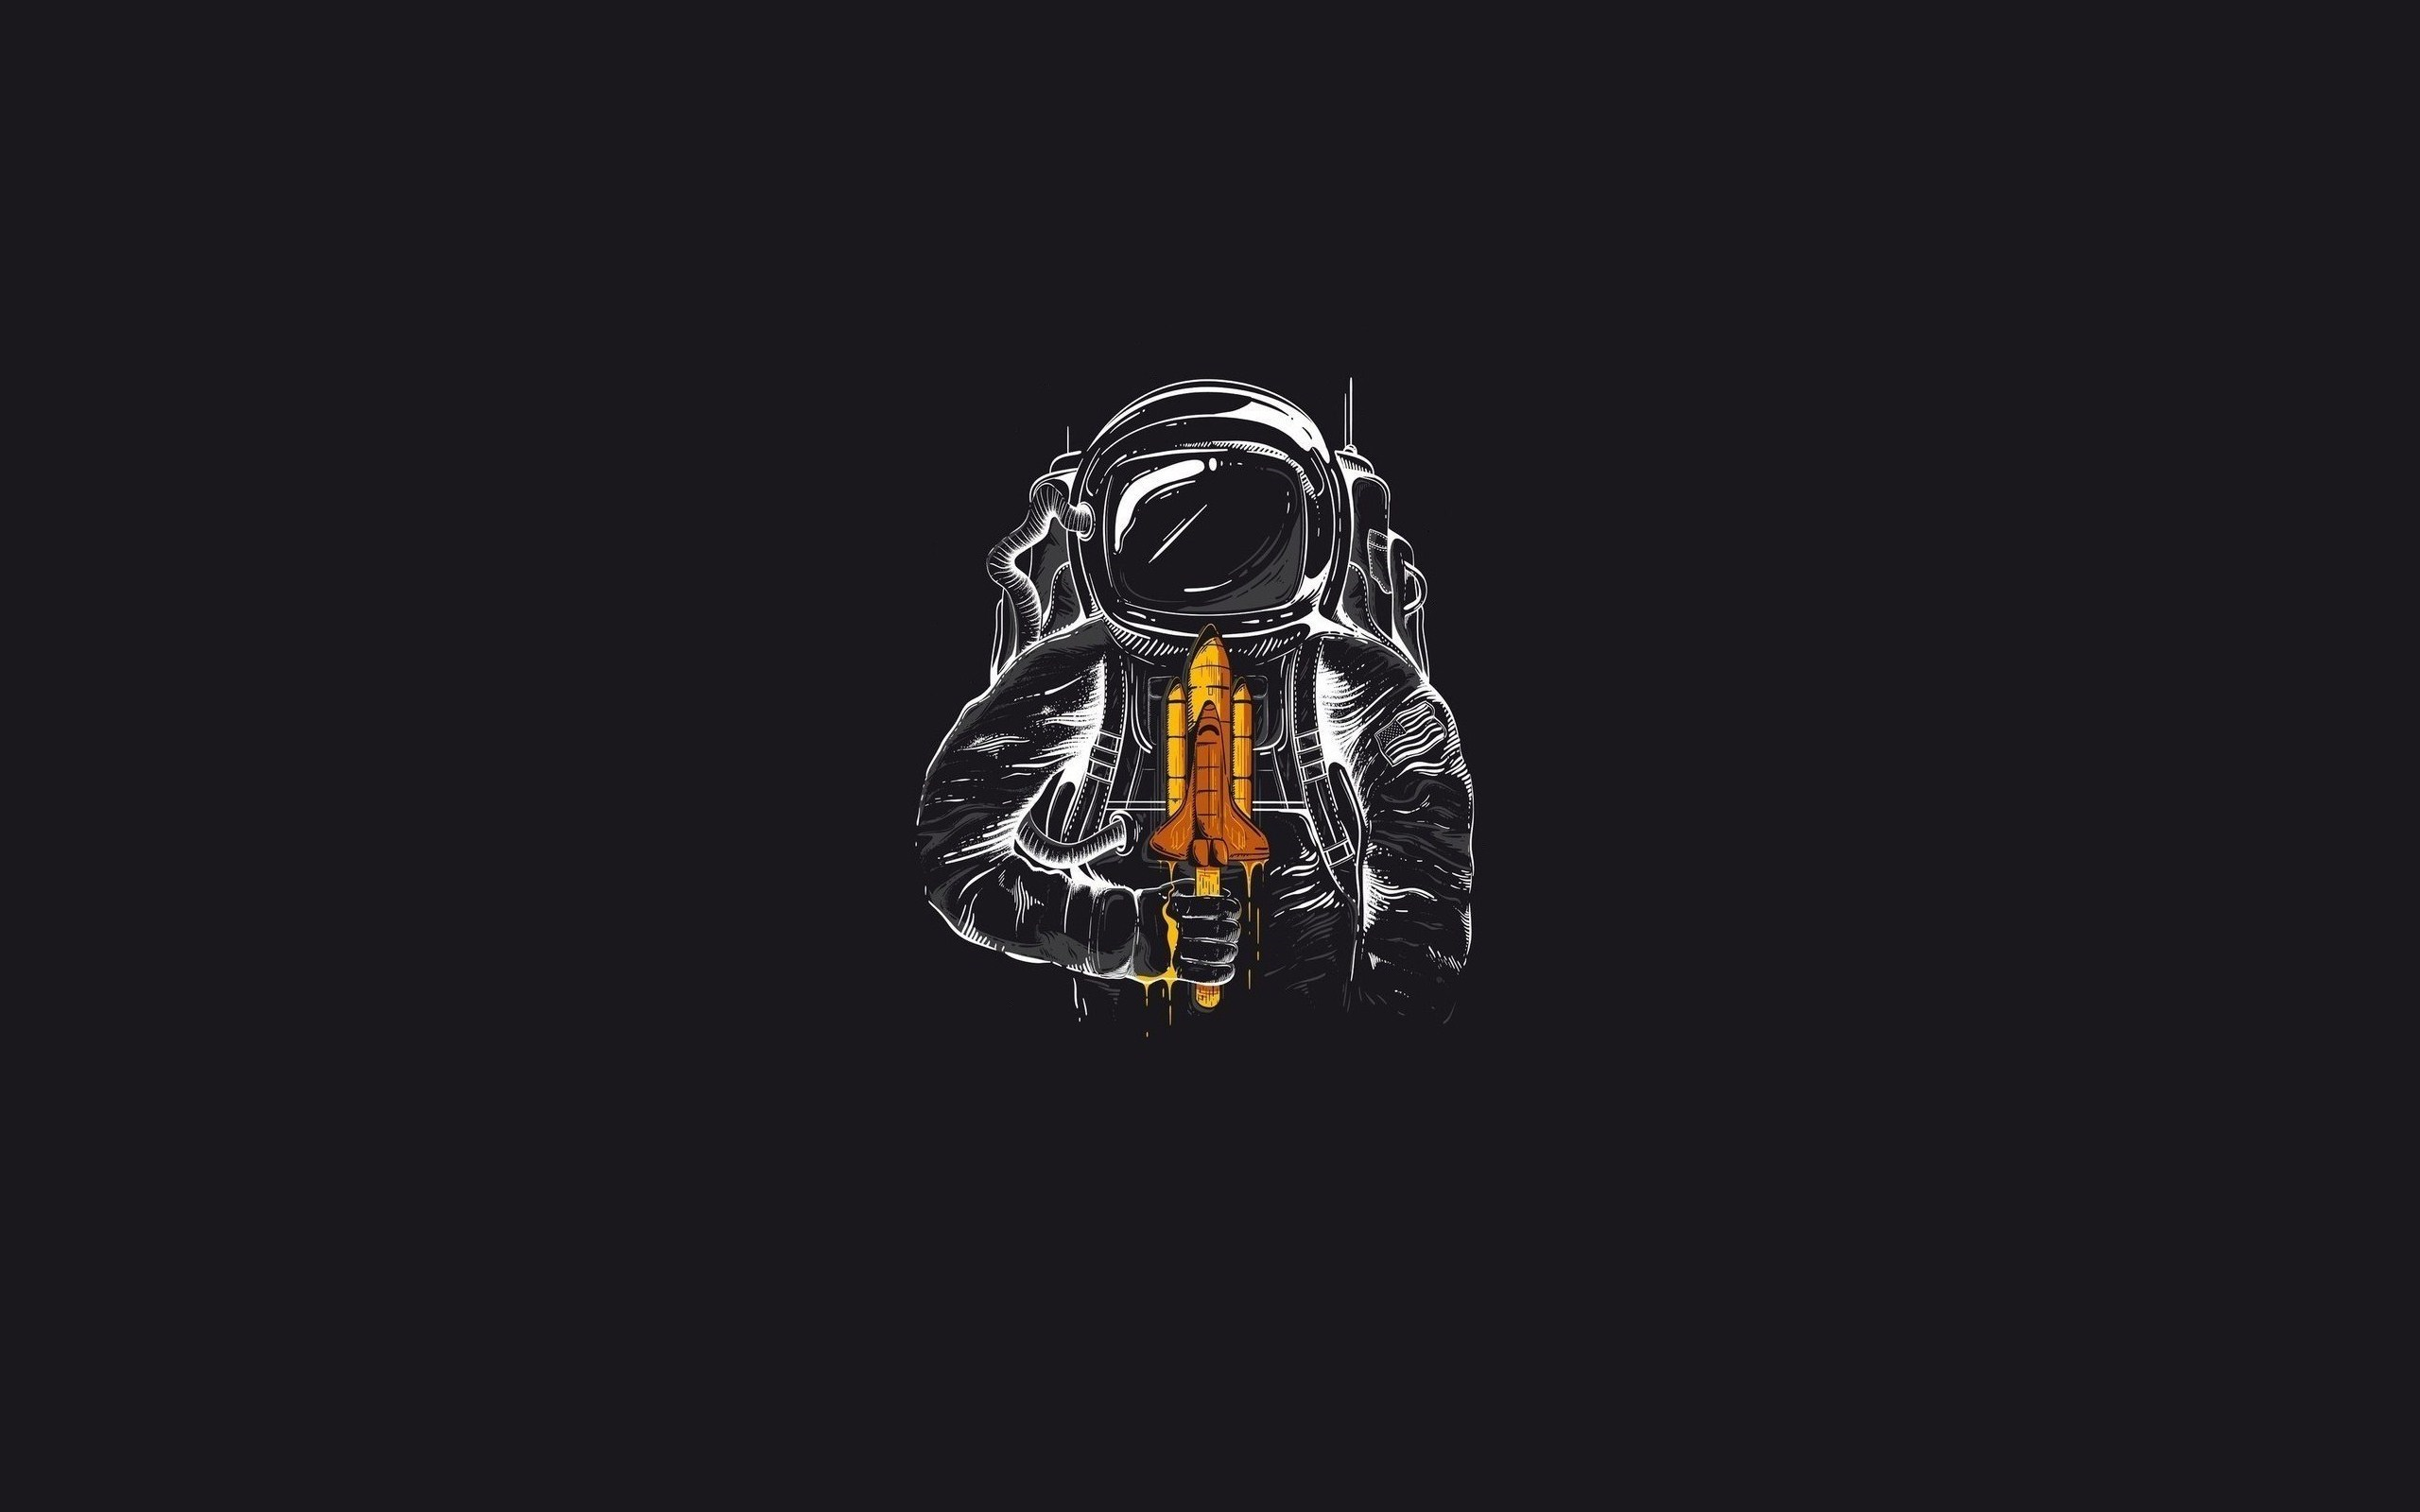 Spaceman Spaceship Art